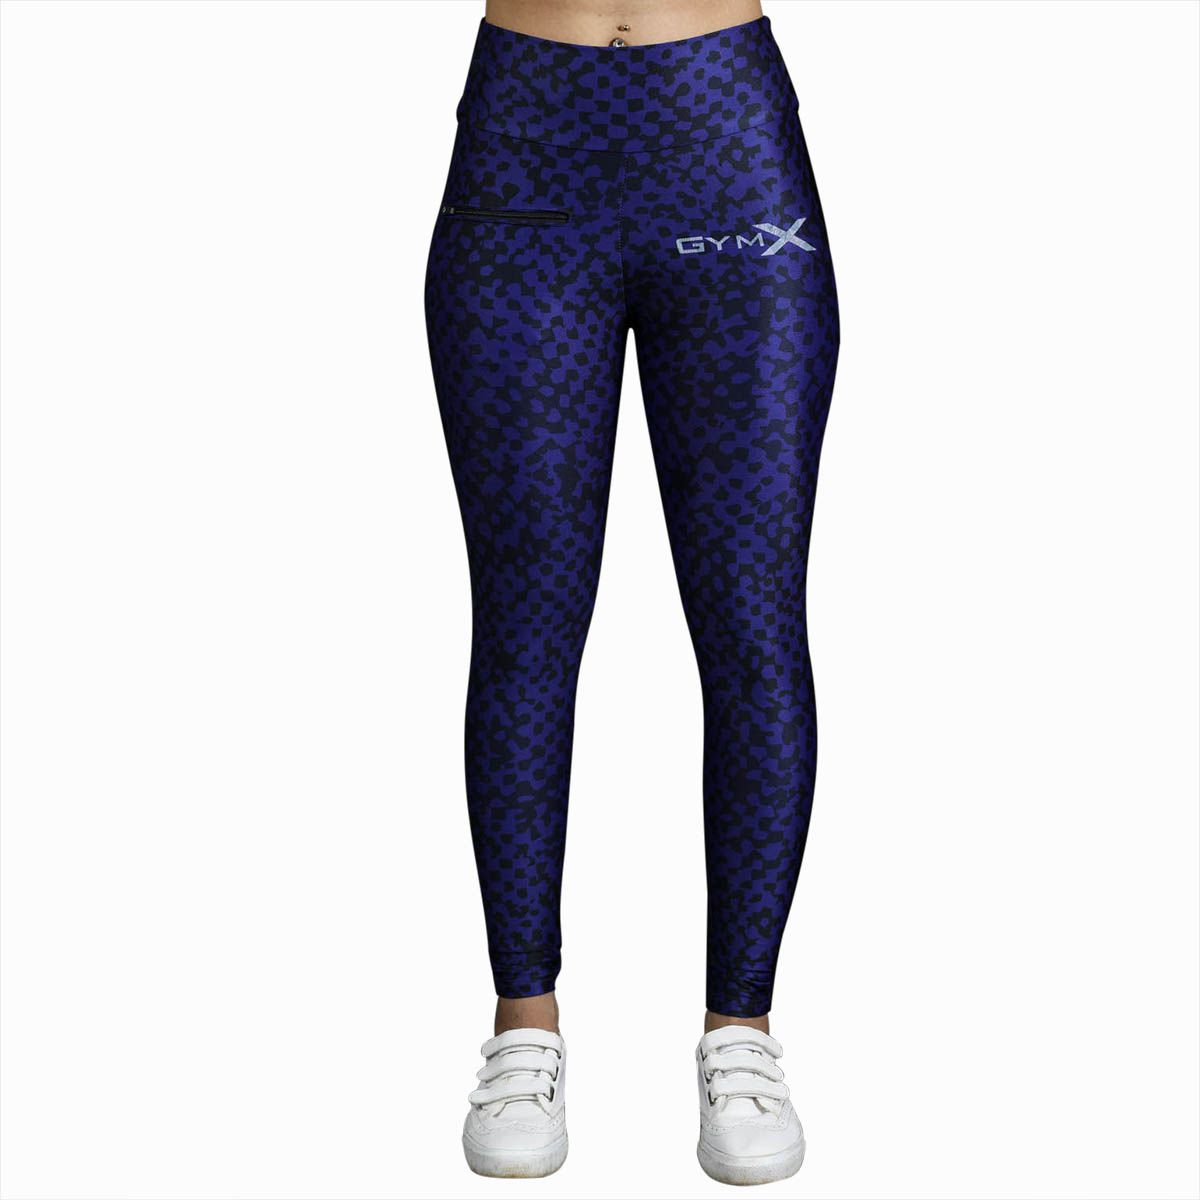 GymX Womens Polyester Allure Leggings: Luxe Leopard